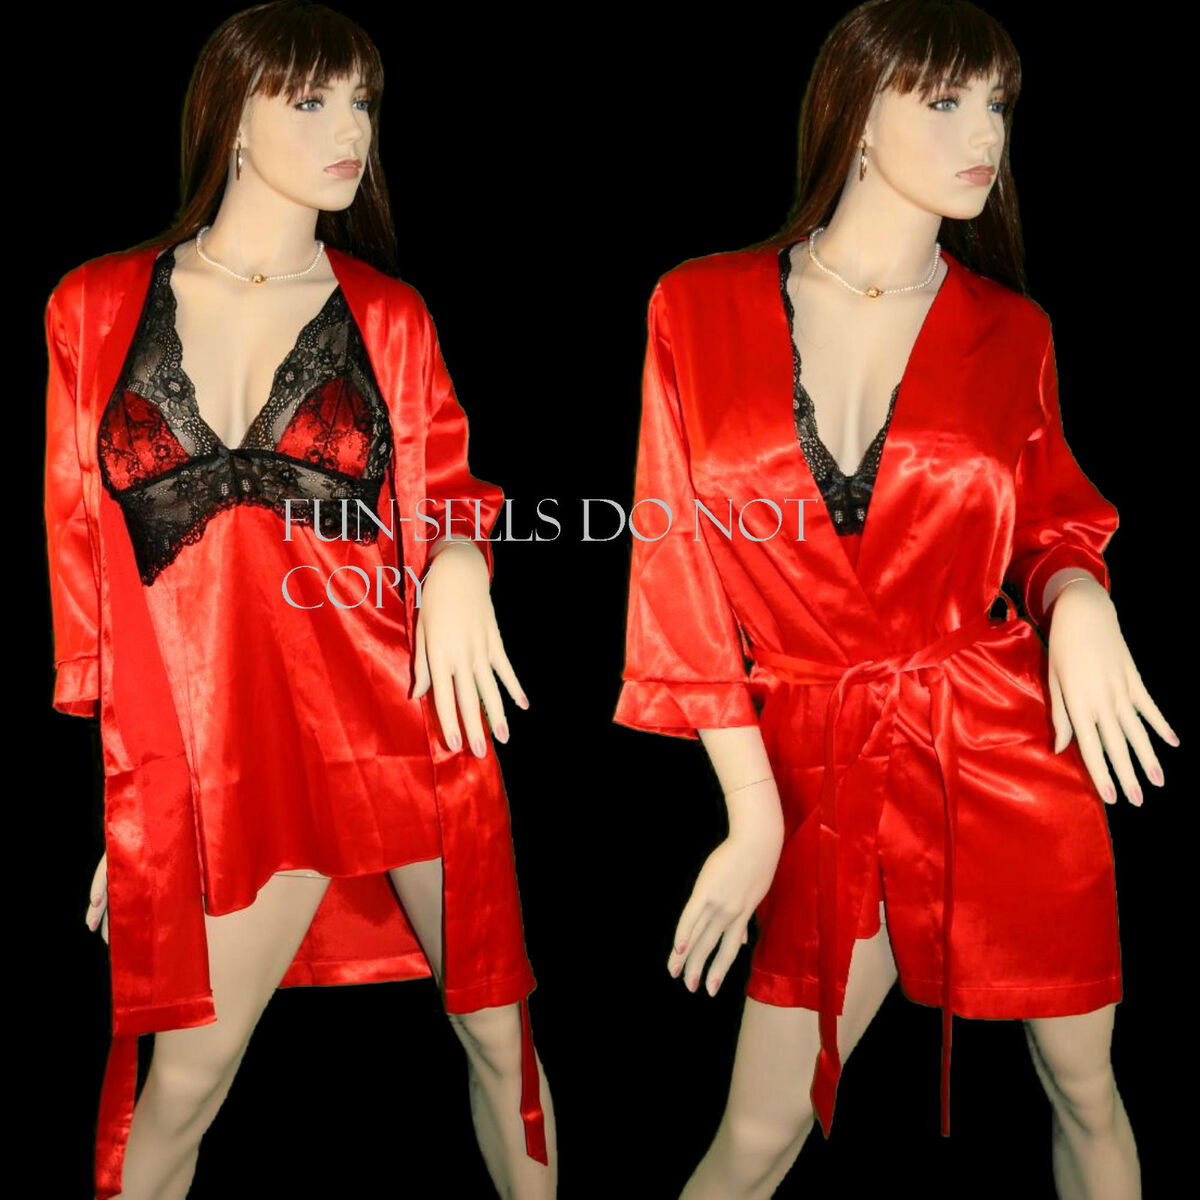 Woman's Sexy Baby Doll and Robe Red Black or Purple Satin Lace 2 PC Lingere